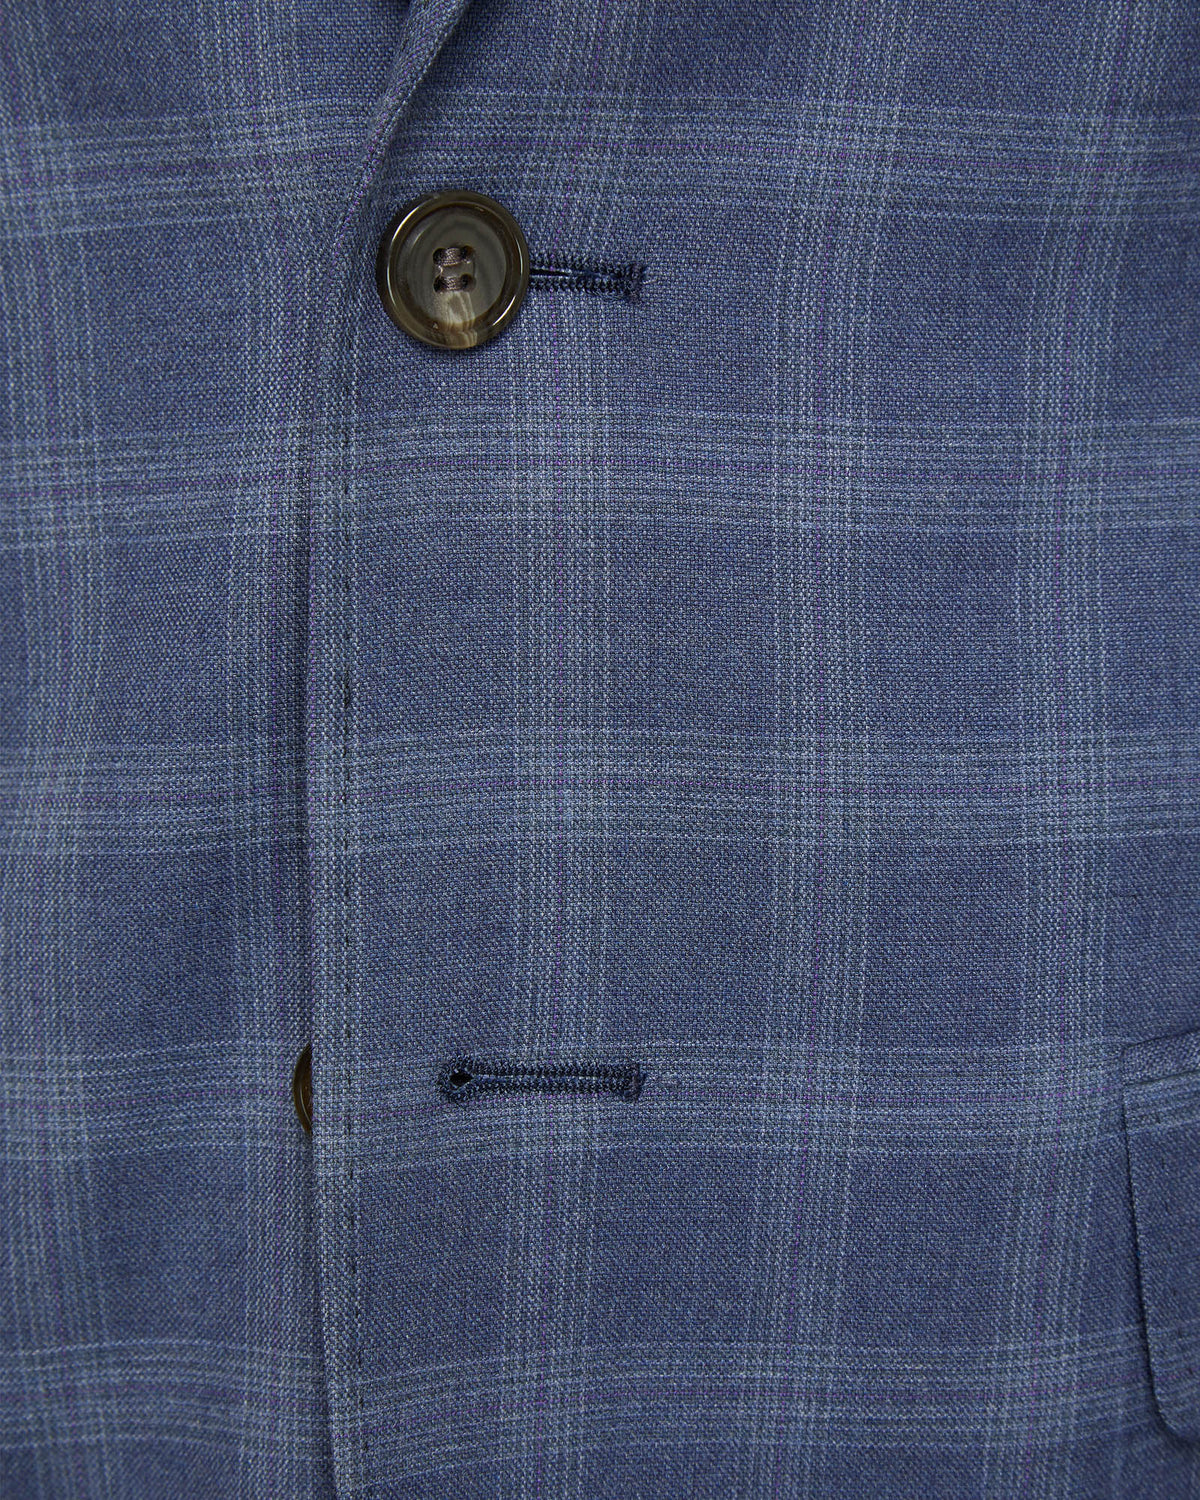 AUDEN ECO CHECKED SUIT JACKET BLUE CHECK